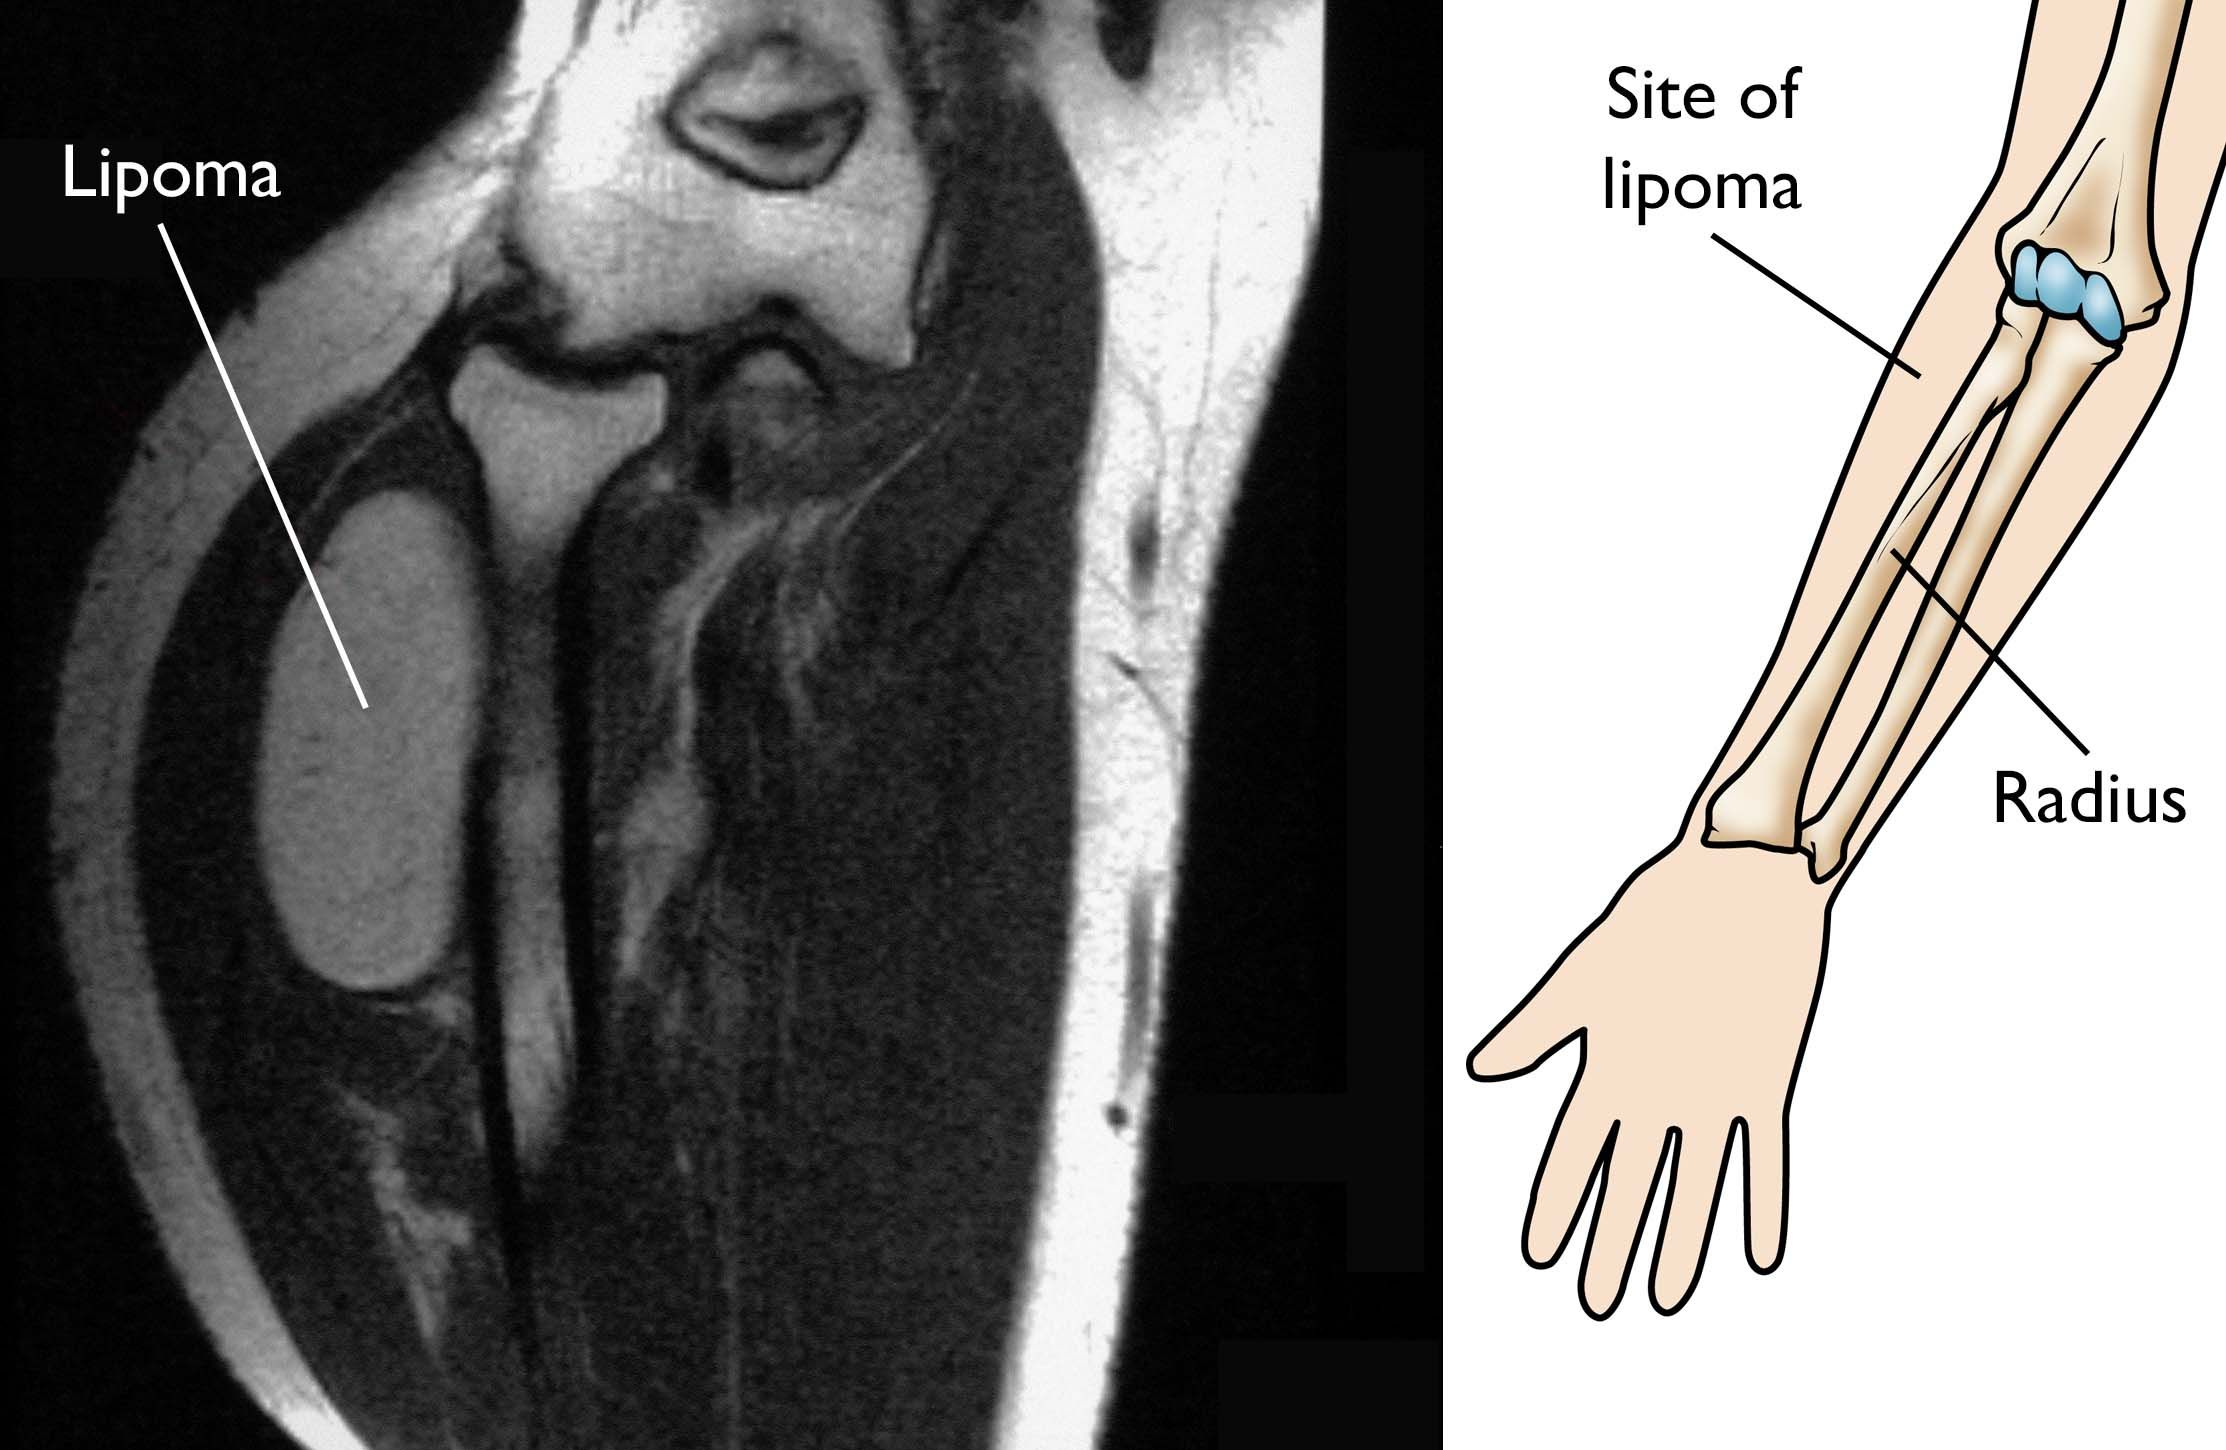 MRI of lipoma near elbow